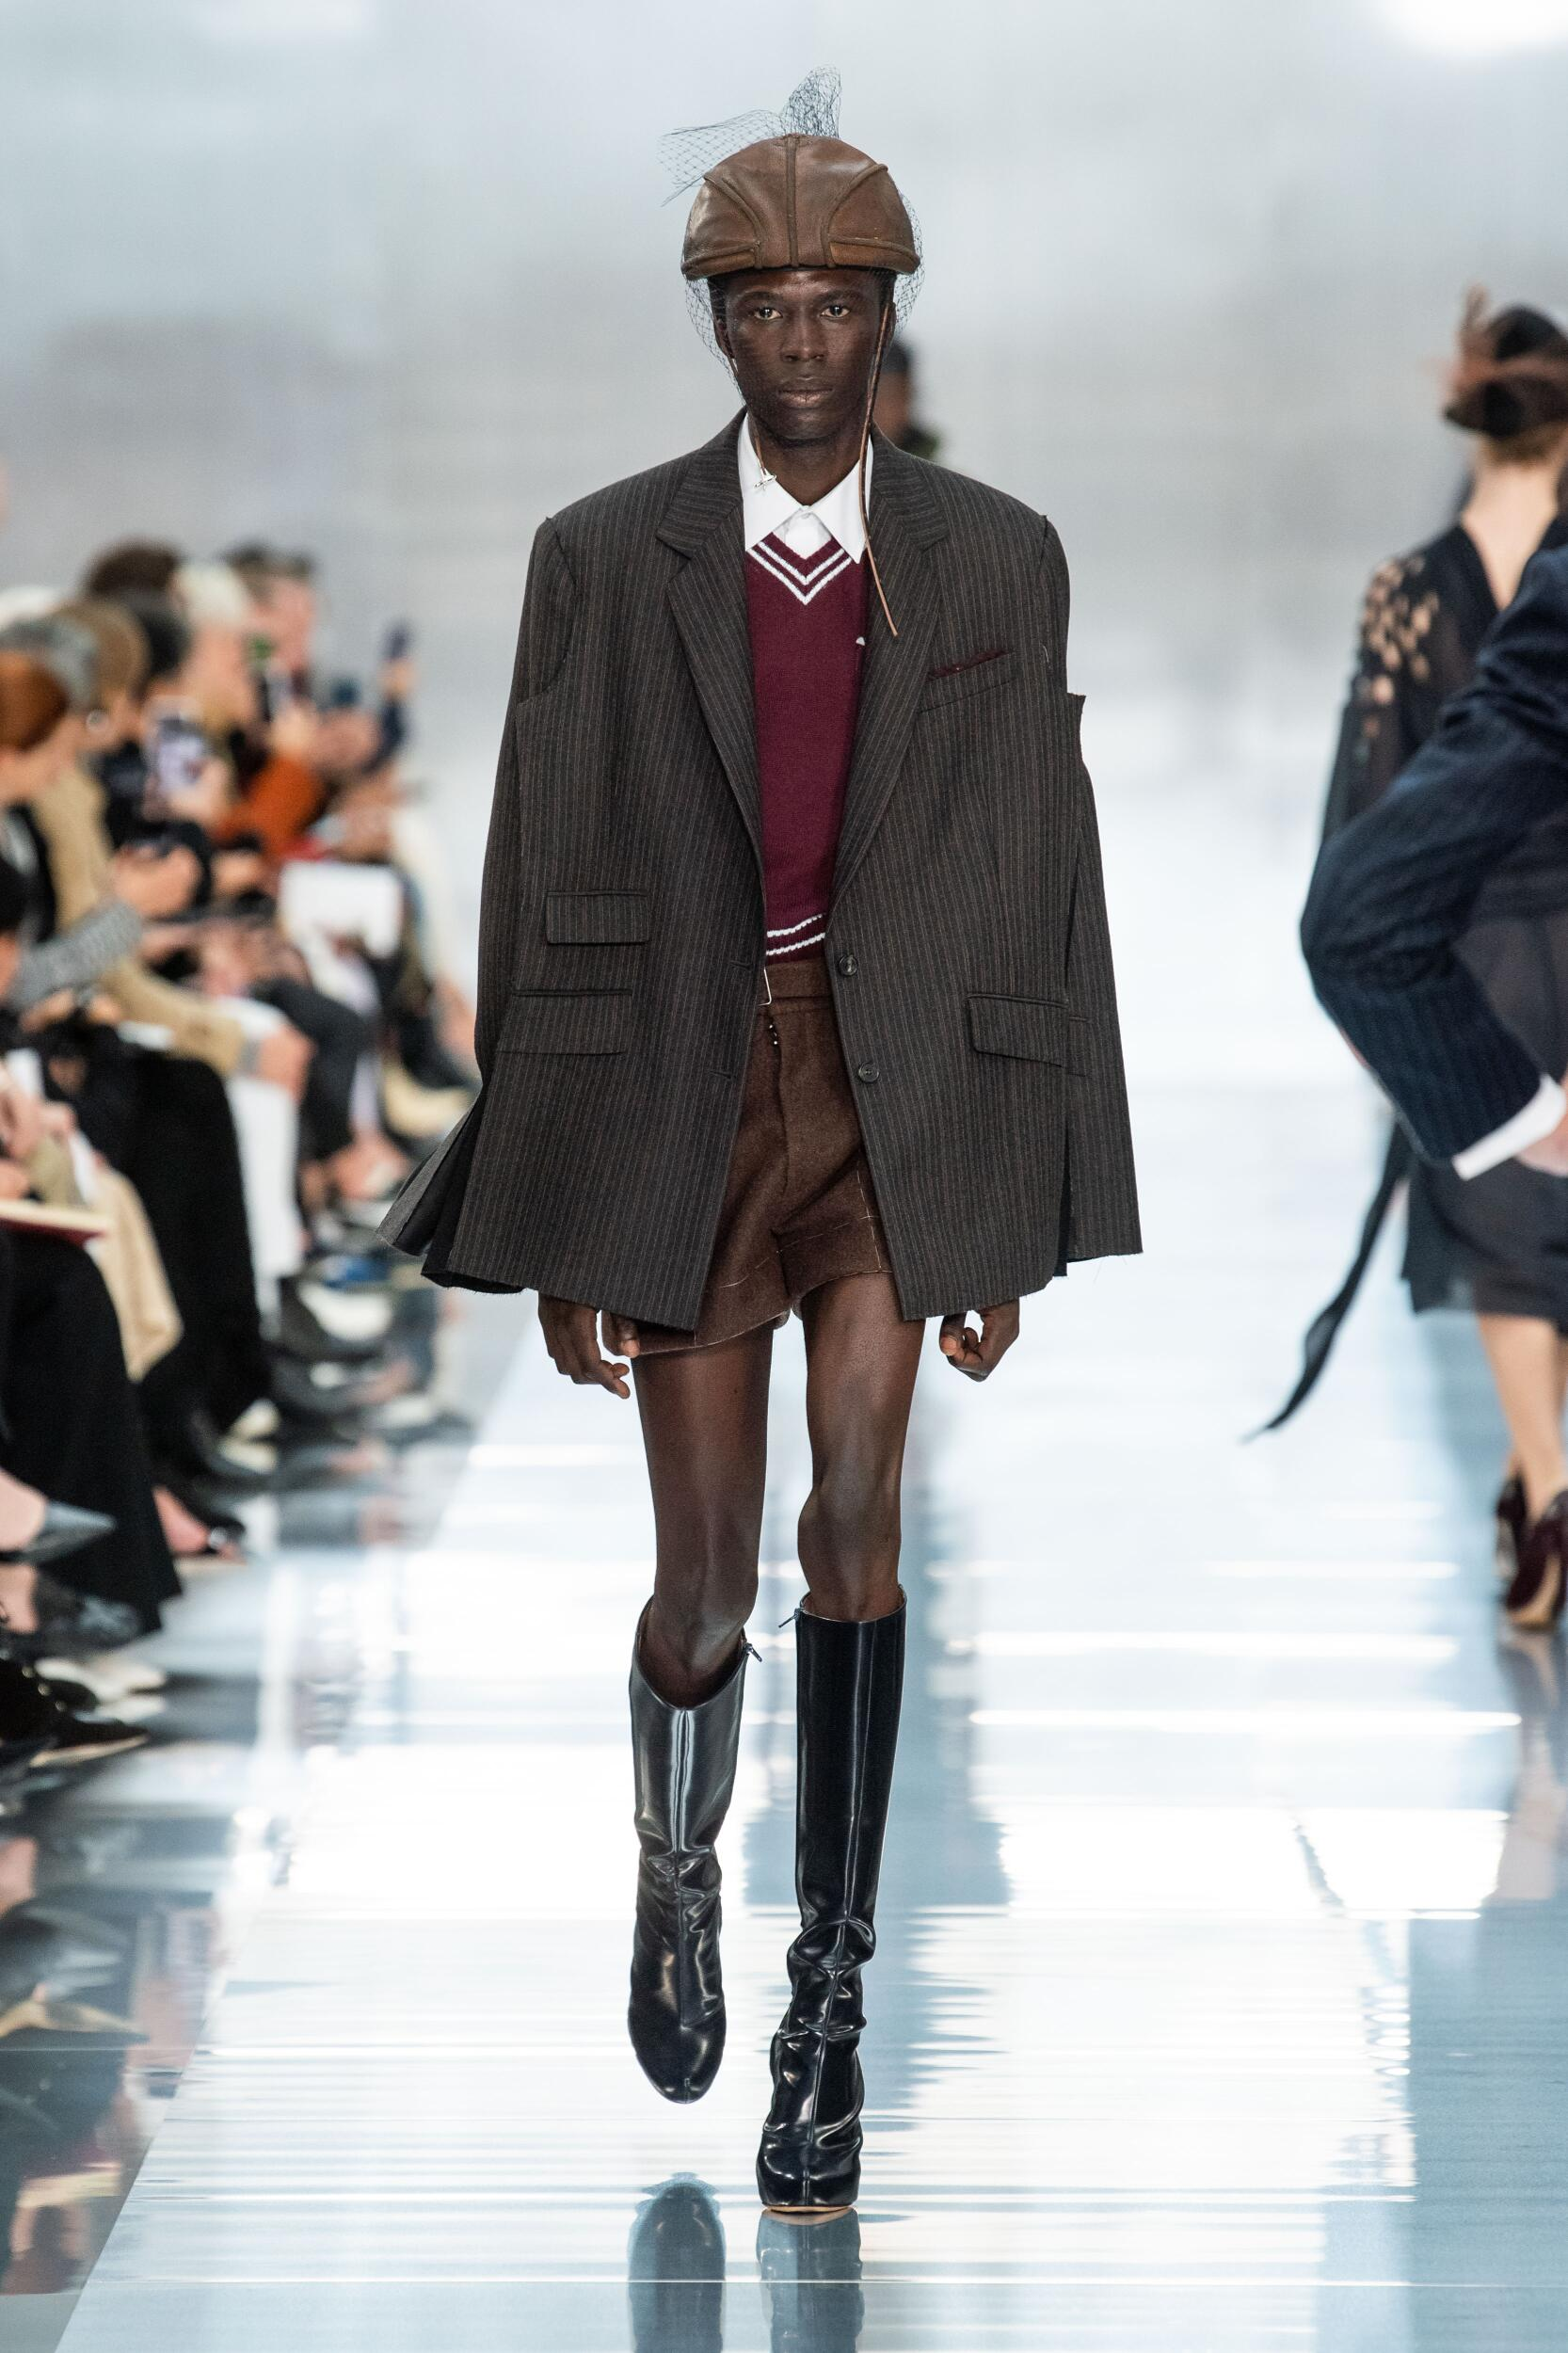 Menswear SS 2020 Fashion Show Maison Margiela